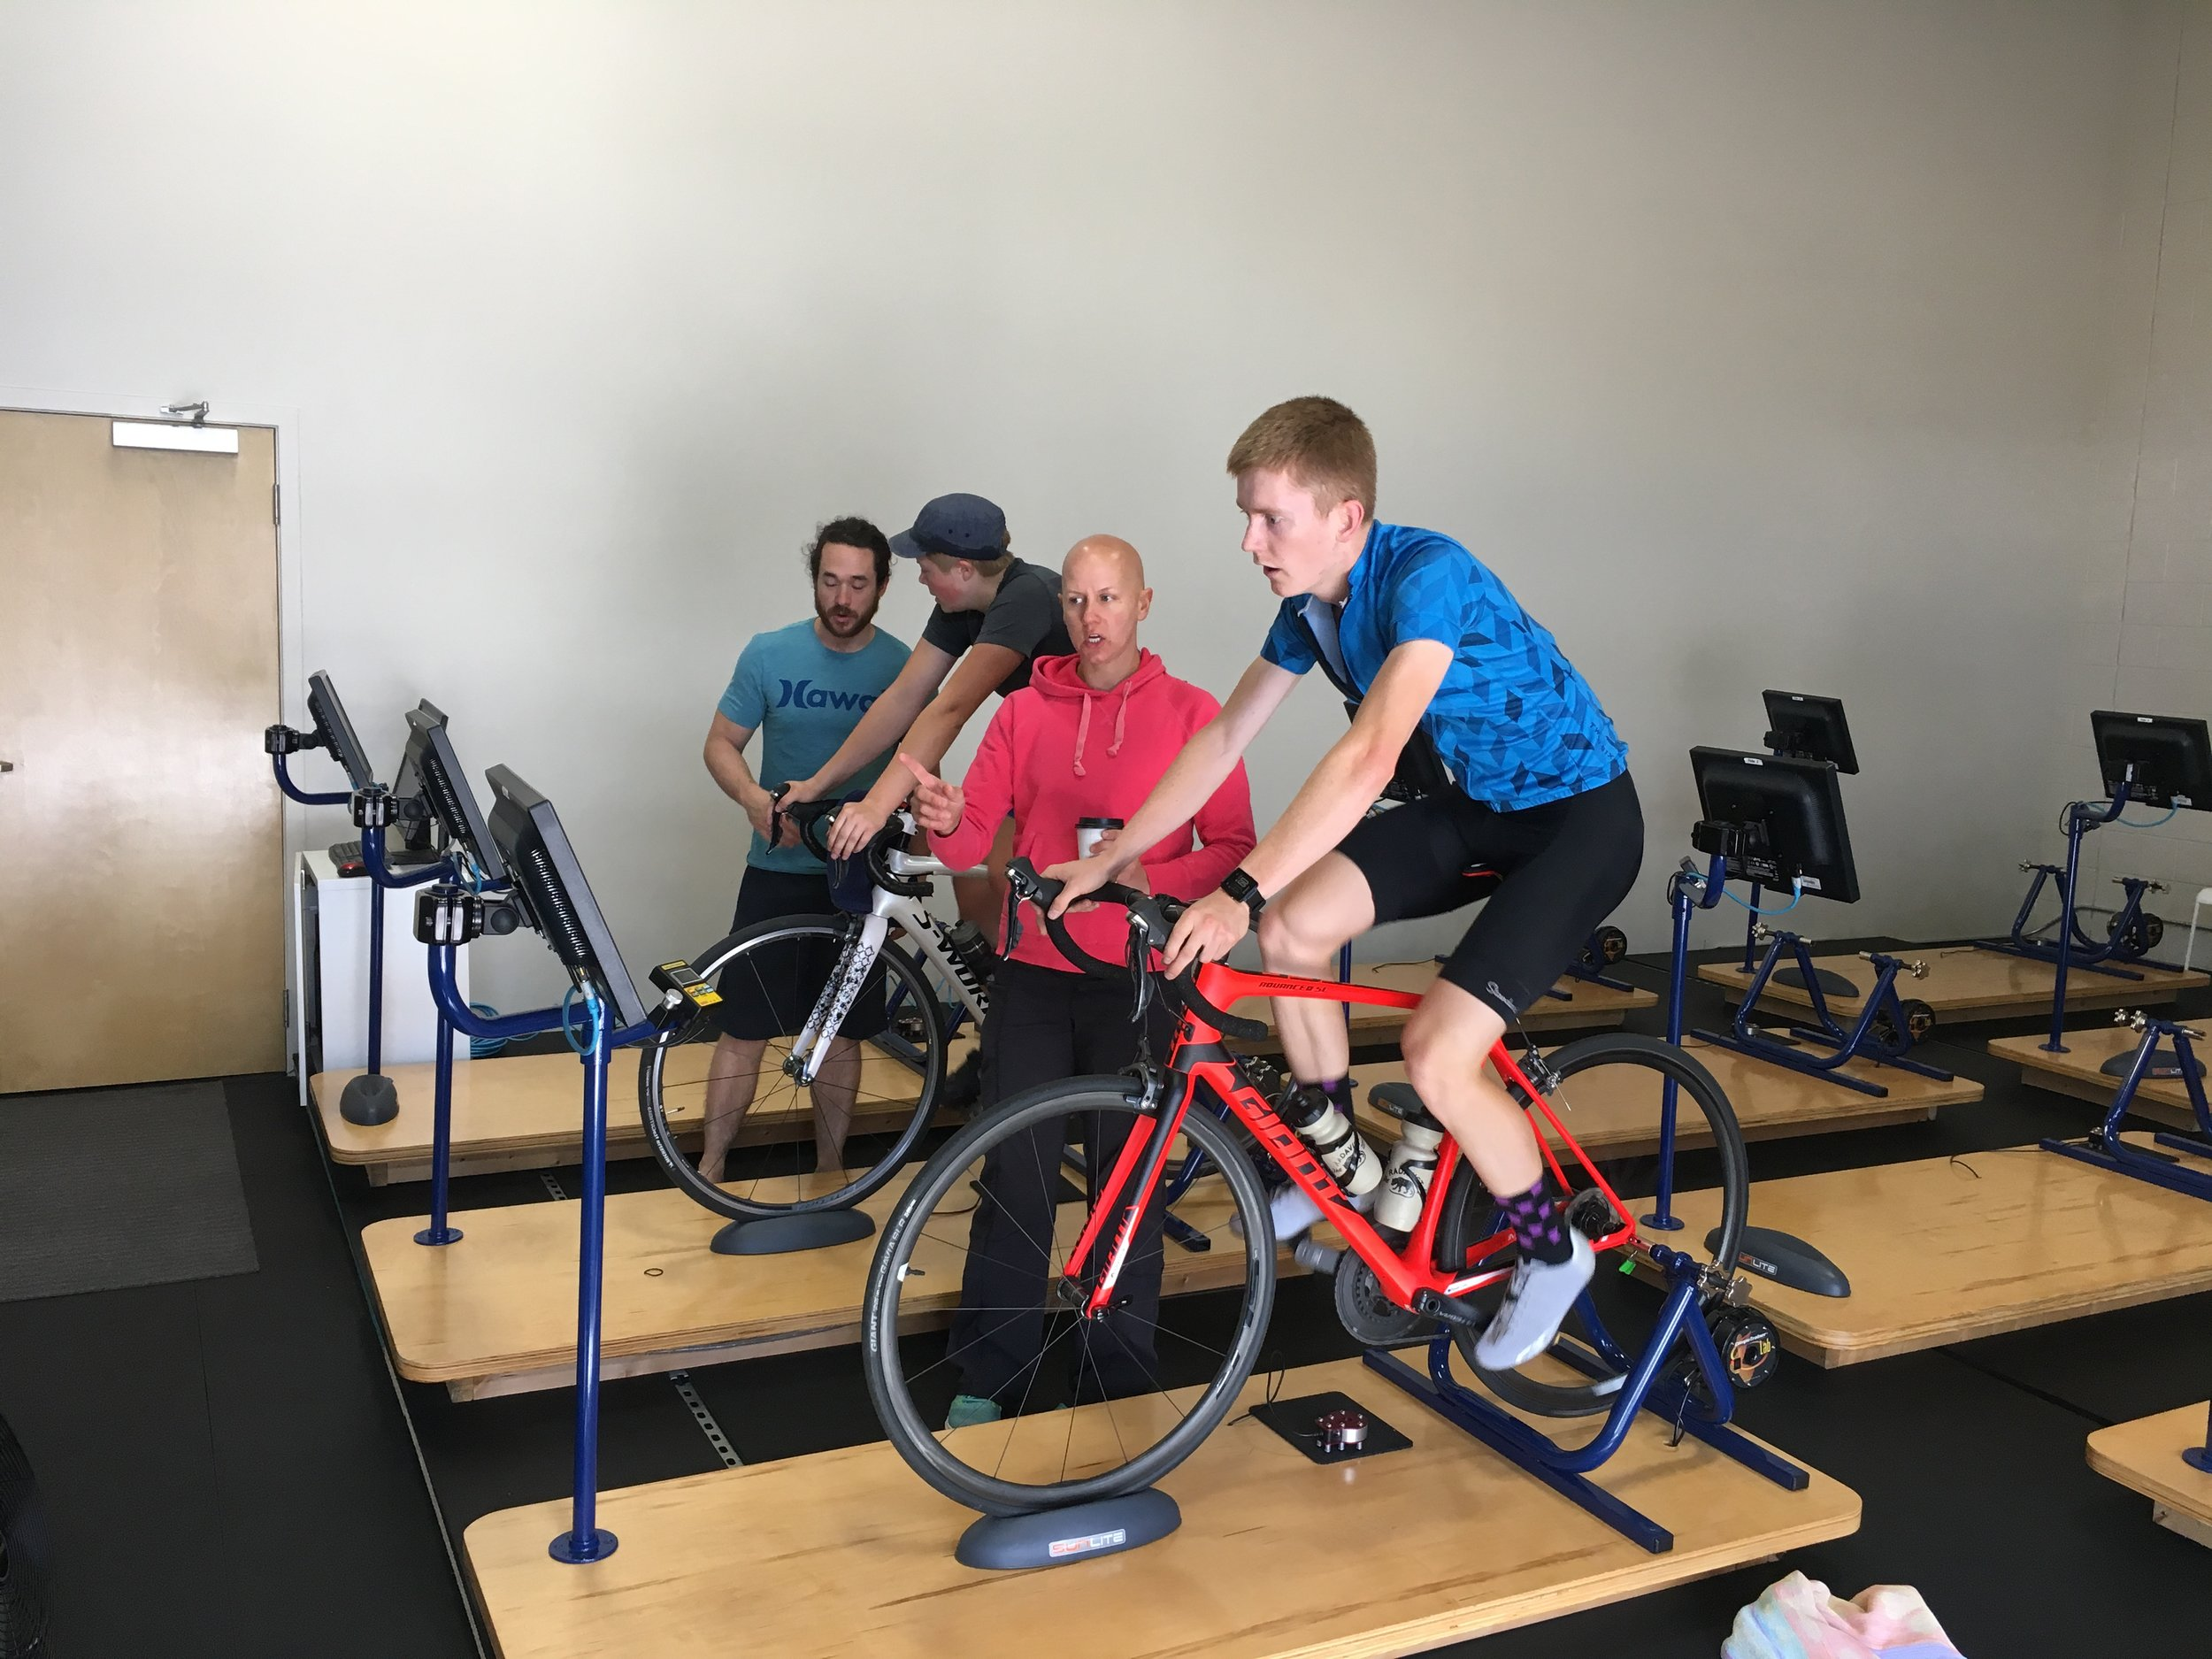 WHAT: - A one-year periodization program that includes goal-setting, full fitness assessment, nutritional support, lifestyle management strategies, activity tracking, strength training, cross-training, technique, rest/recovery, race preparation, team tactics, and lots of riding together.